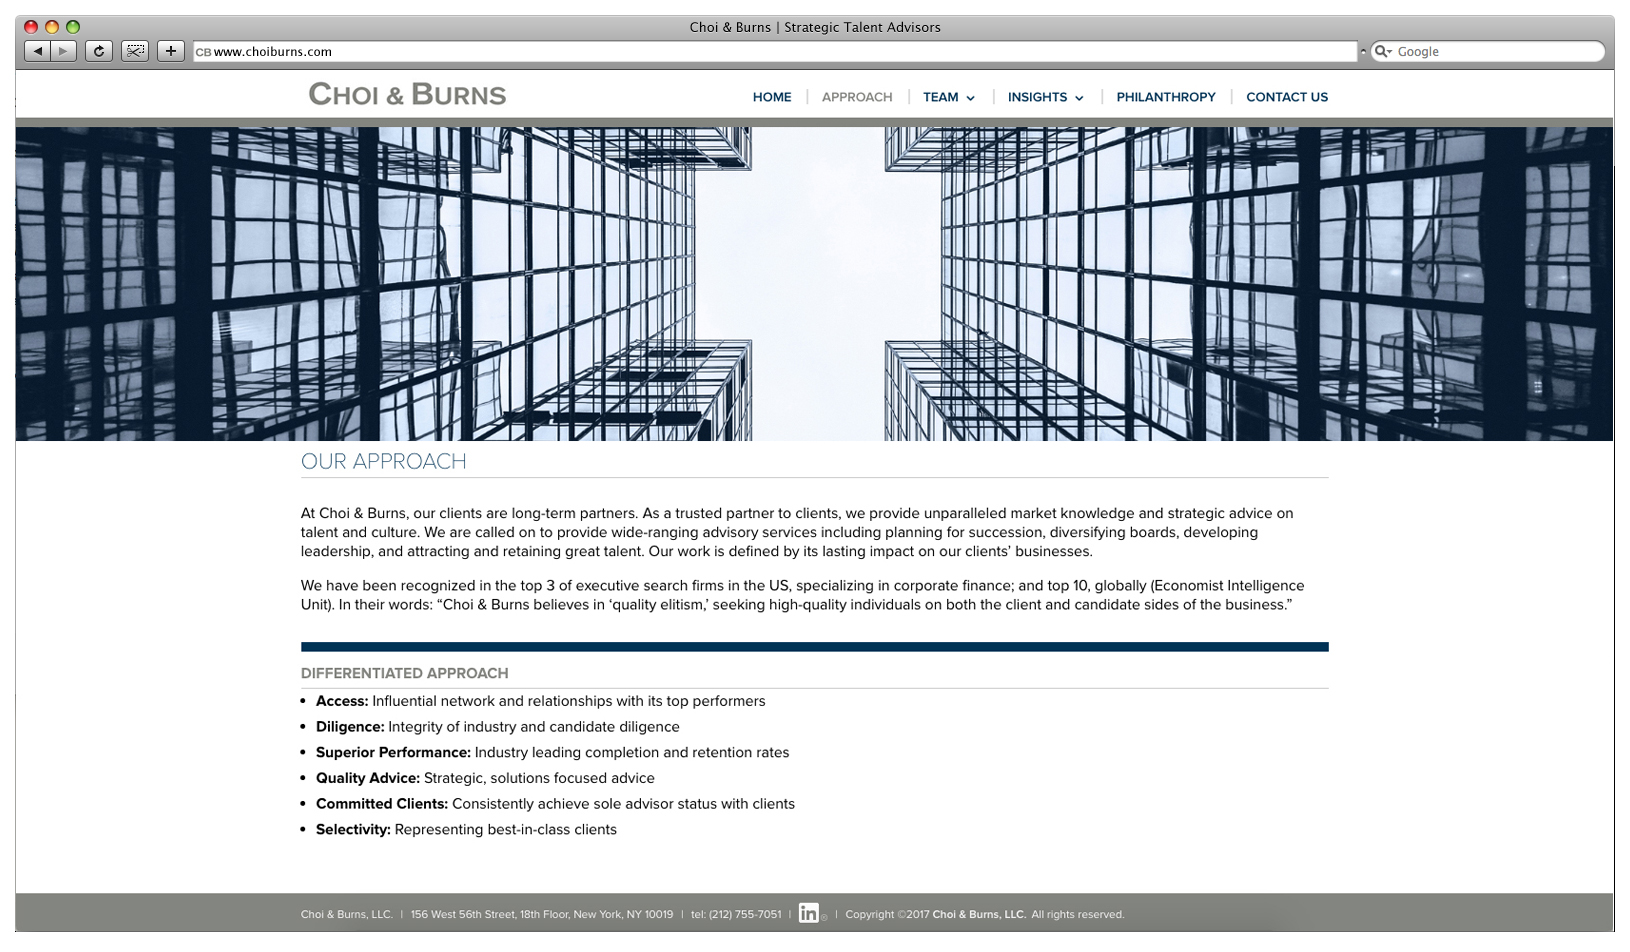 Choi & Burns Website – Approach